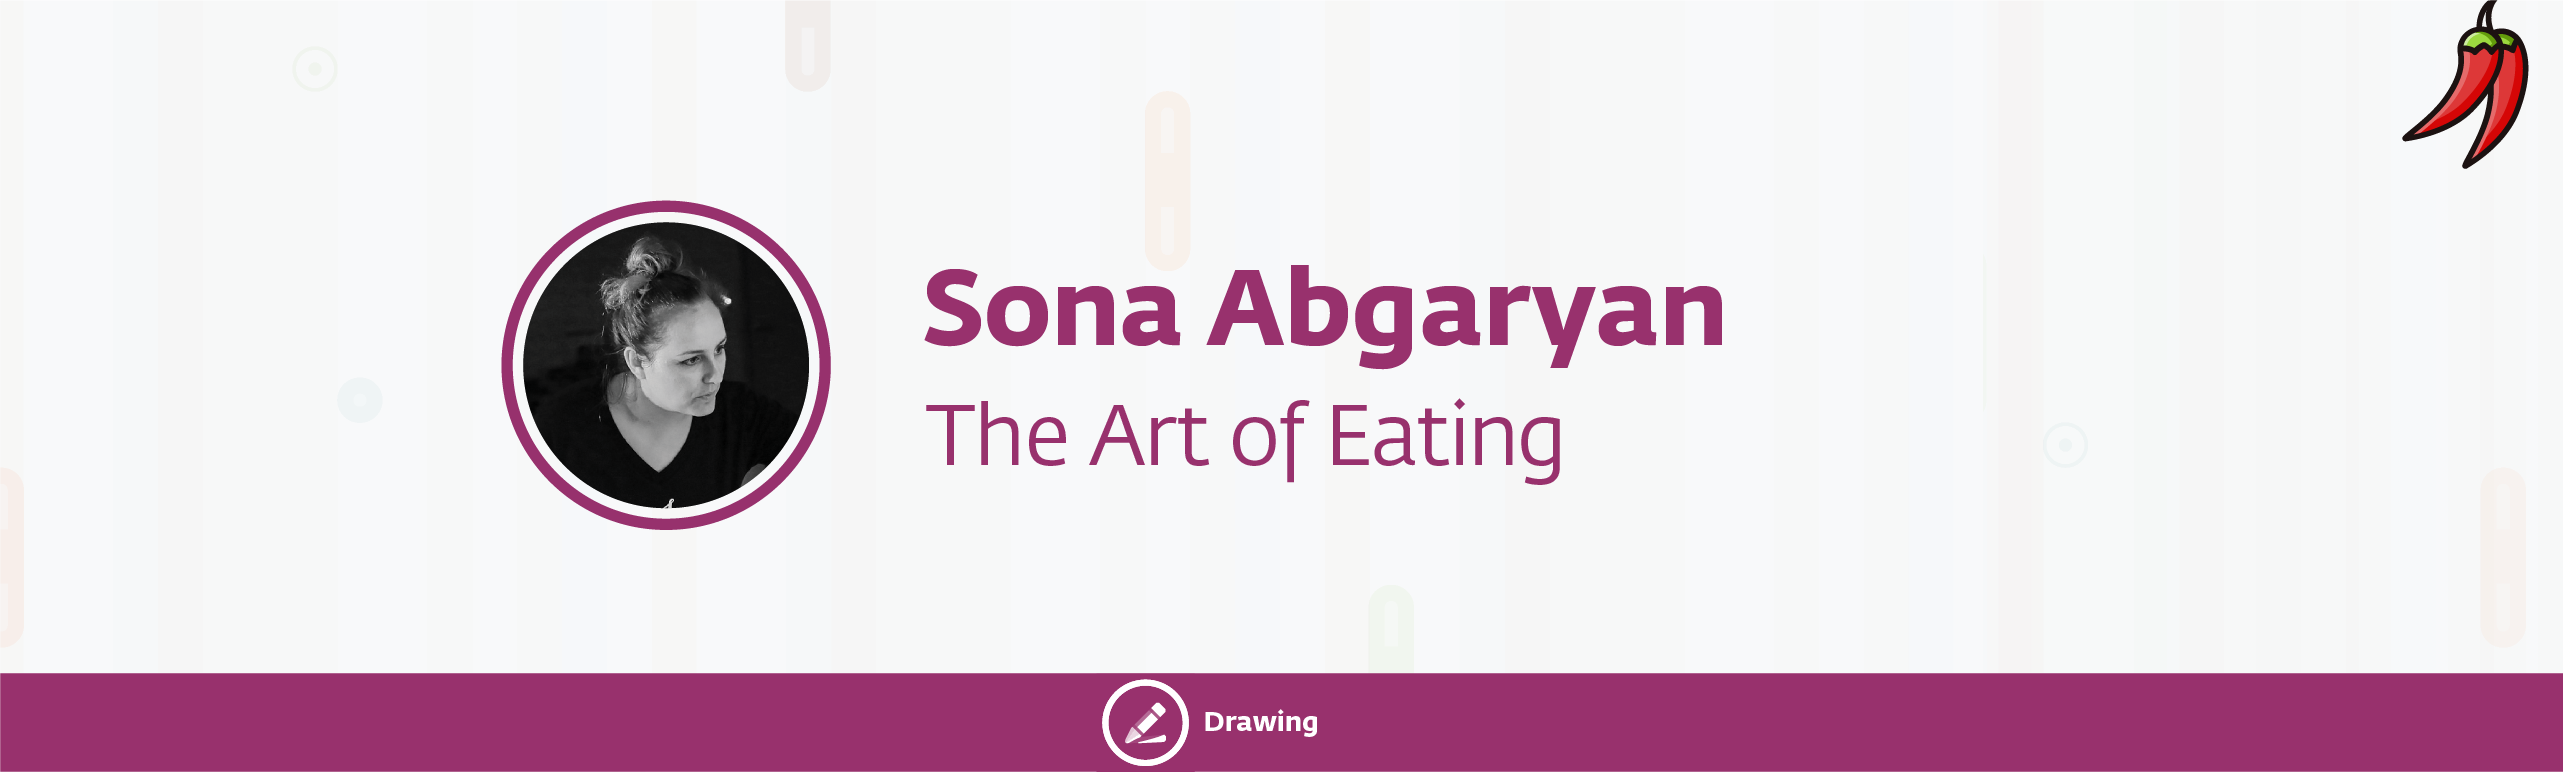 13 1 - The Art of Eating